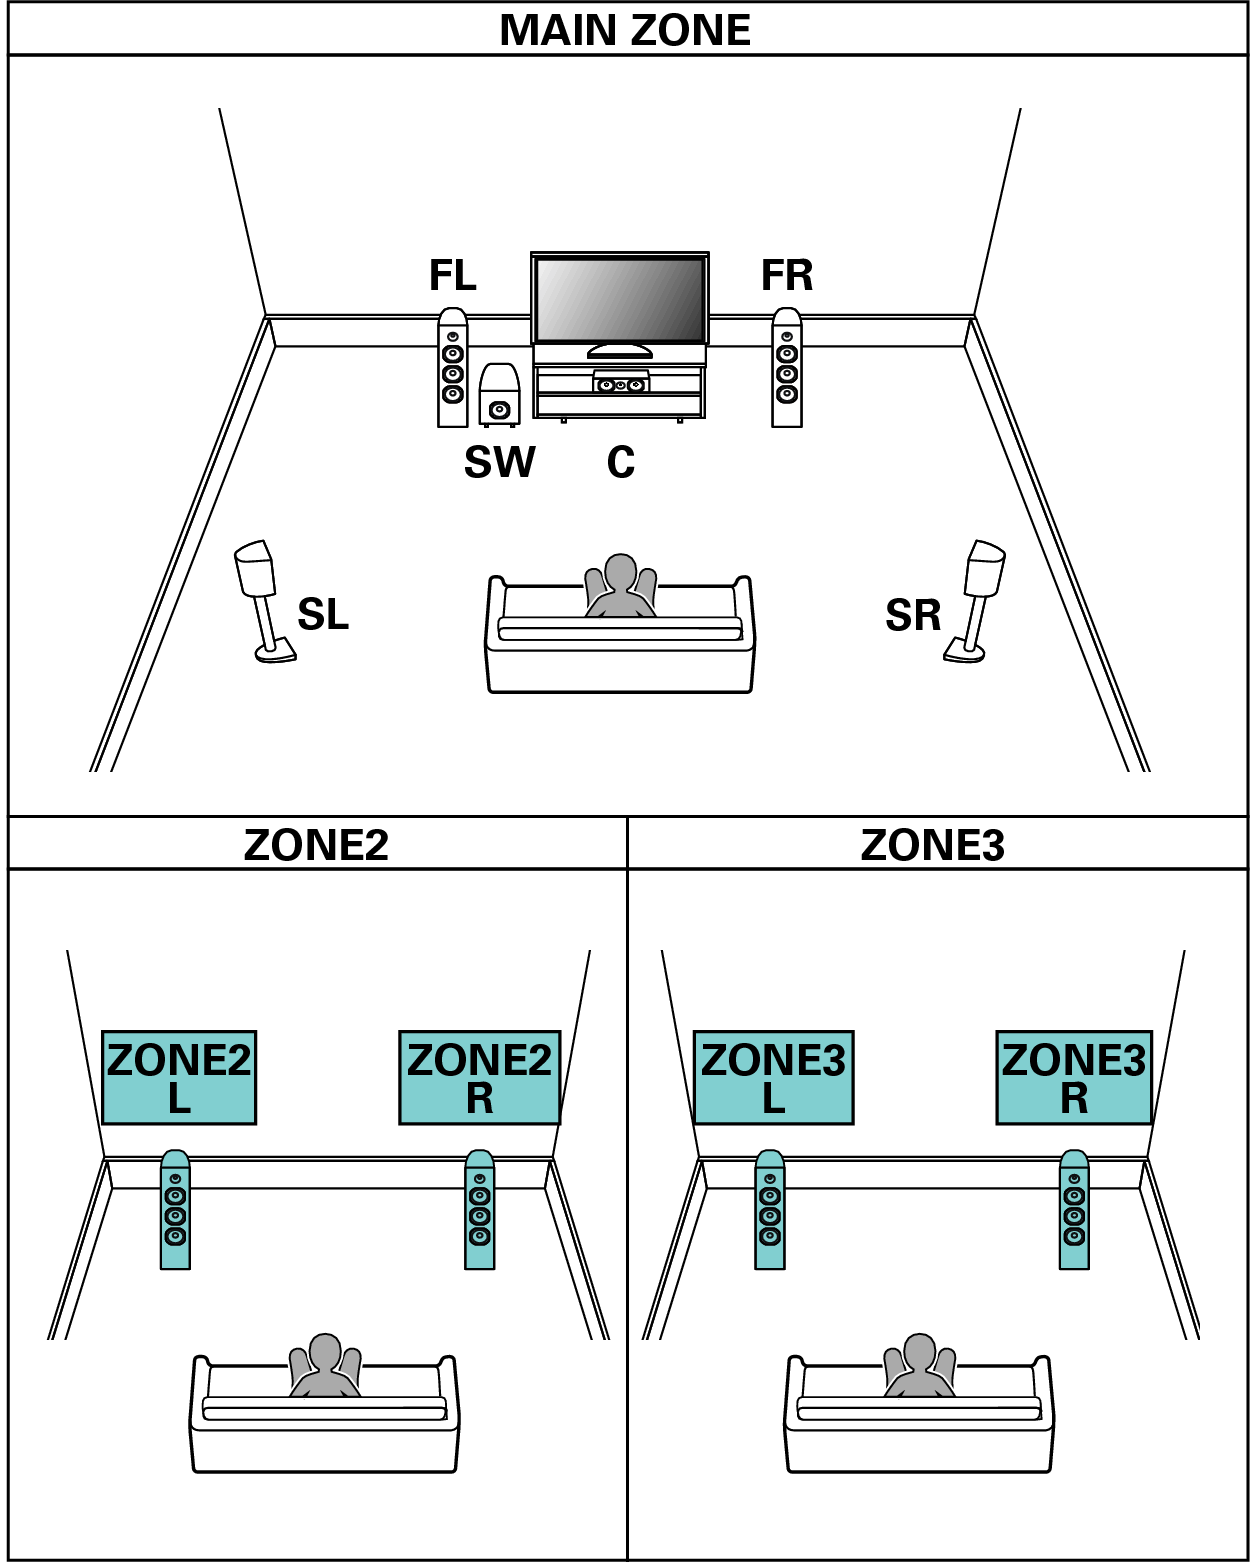 Surround Sound Speaker Placement Ceiling On 5 1 Setup Diagram Configuration And Amp Assign Settings Sr7011 Pict Sp Layout 51 2ch